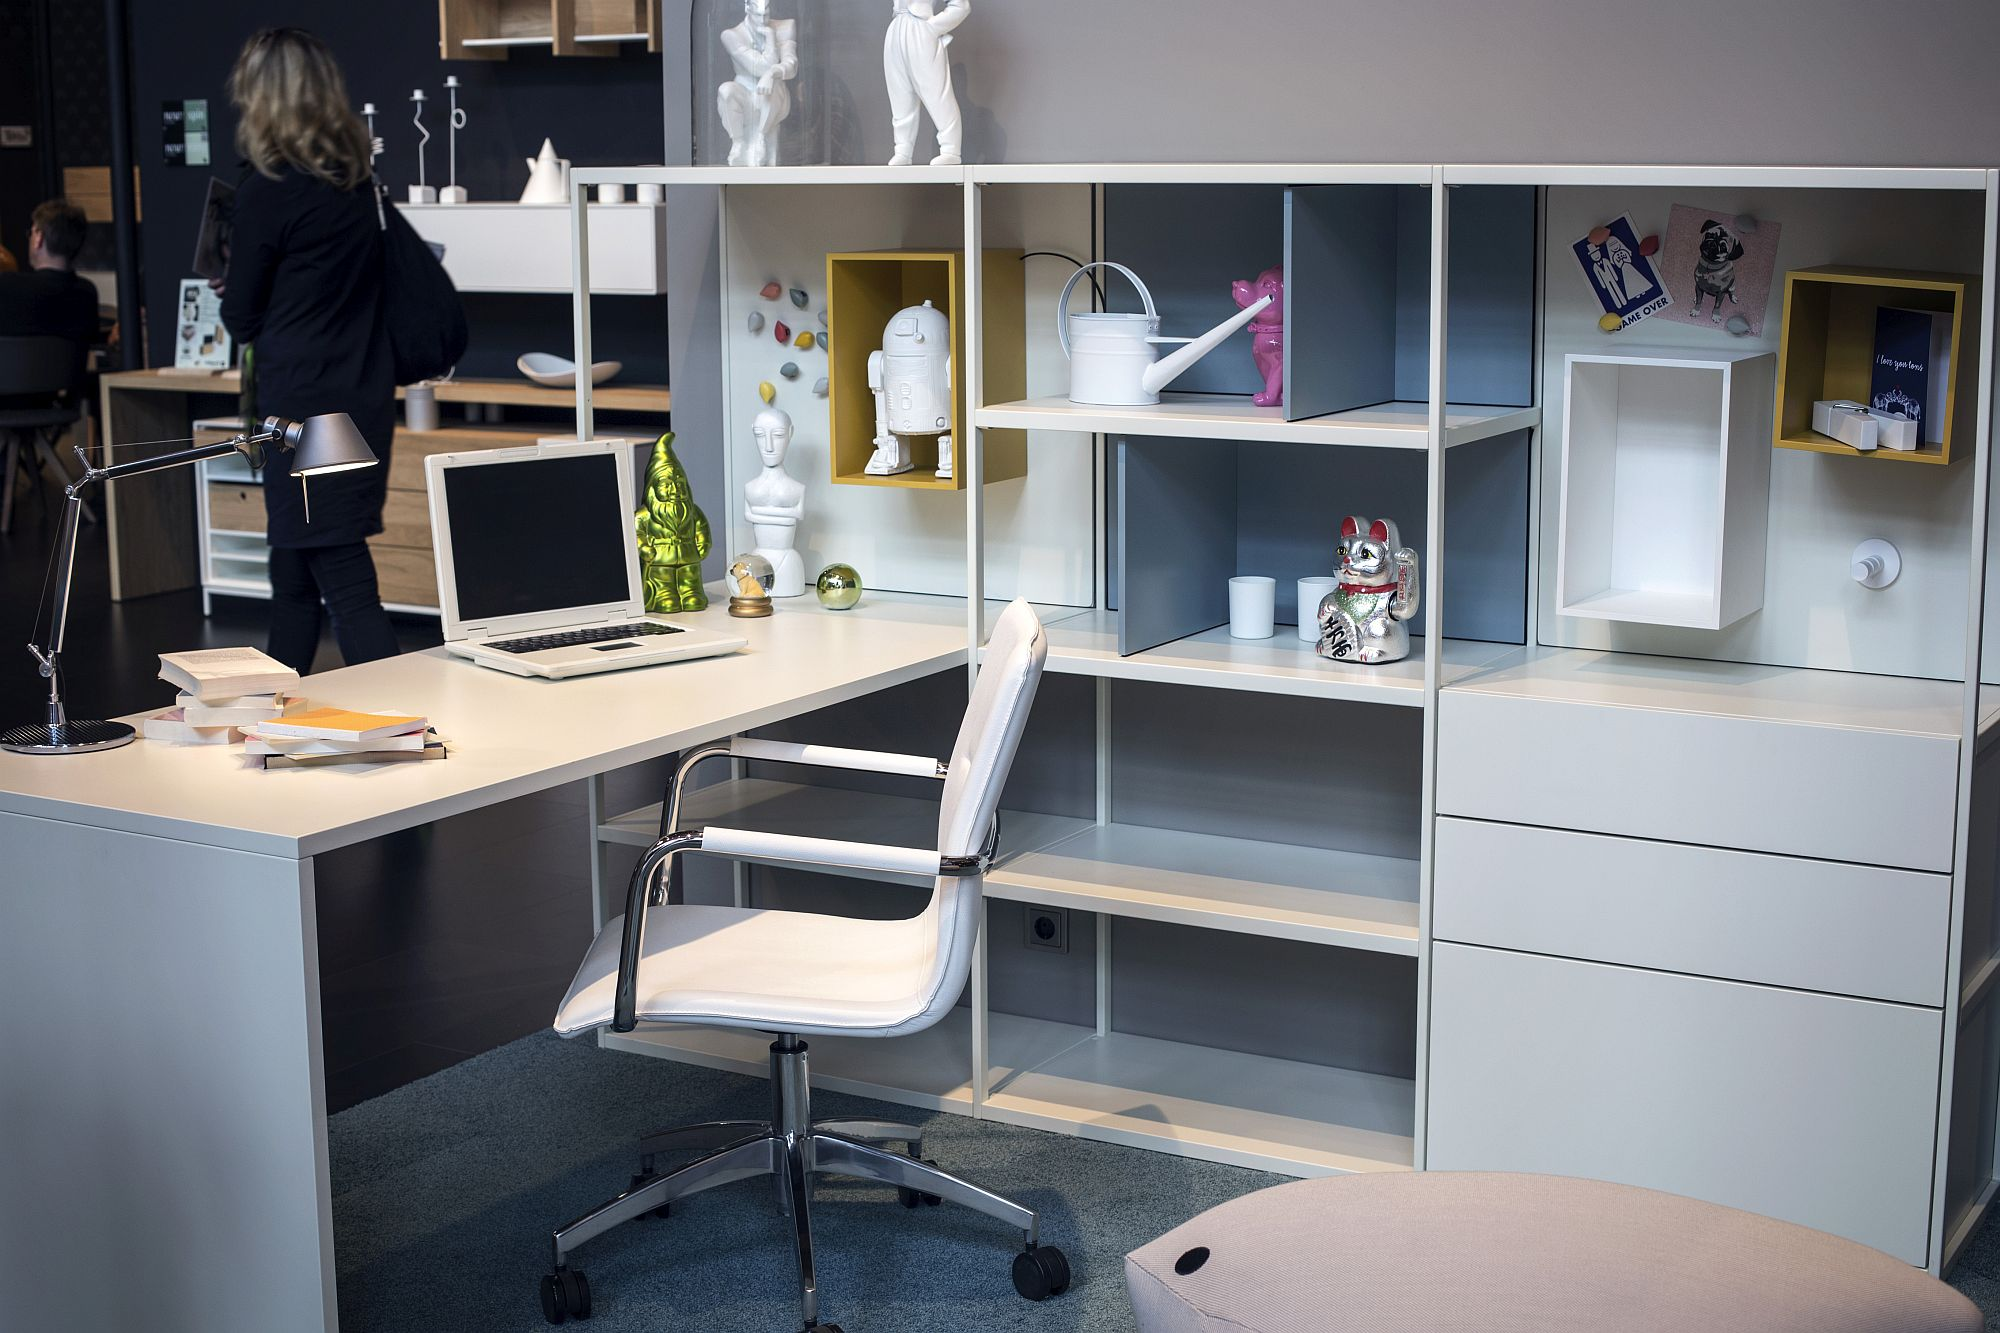 Quirky accessories used to decorate the home office shelf